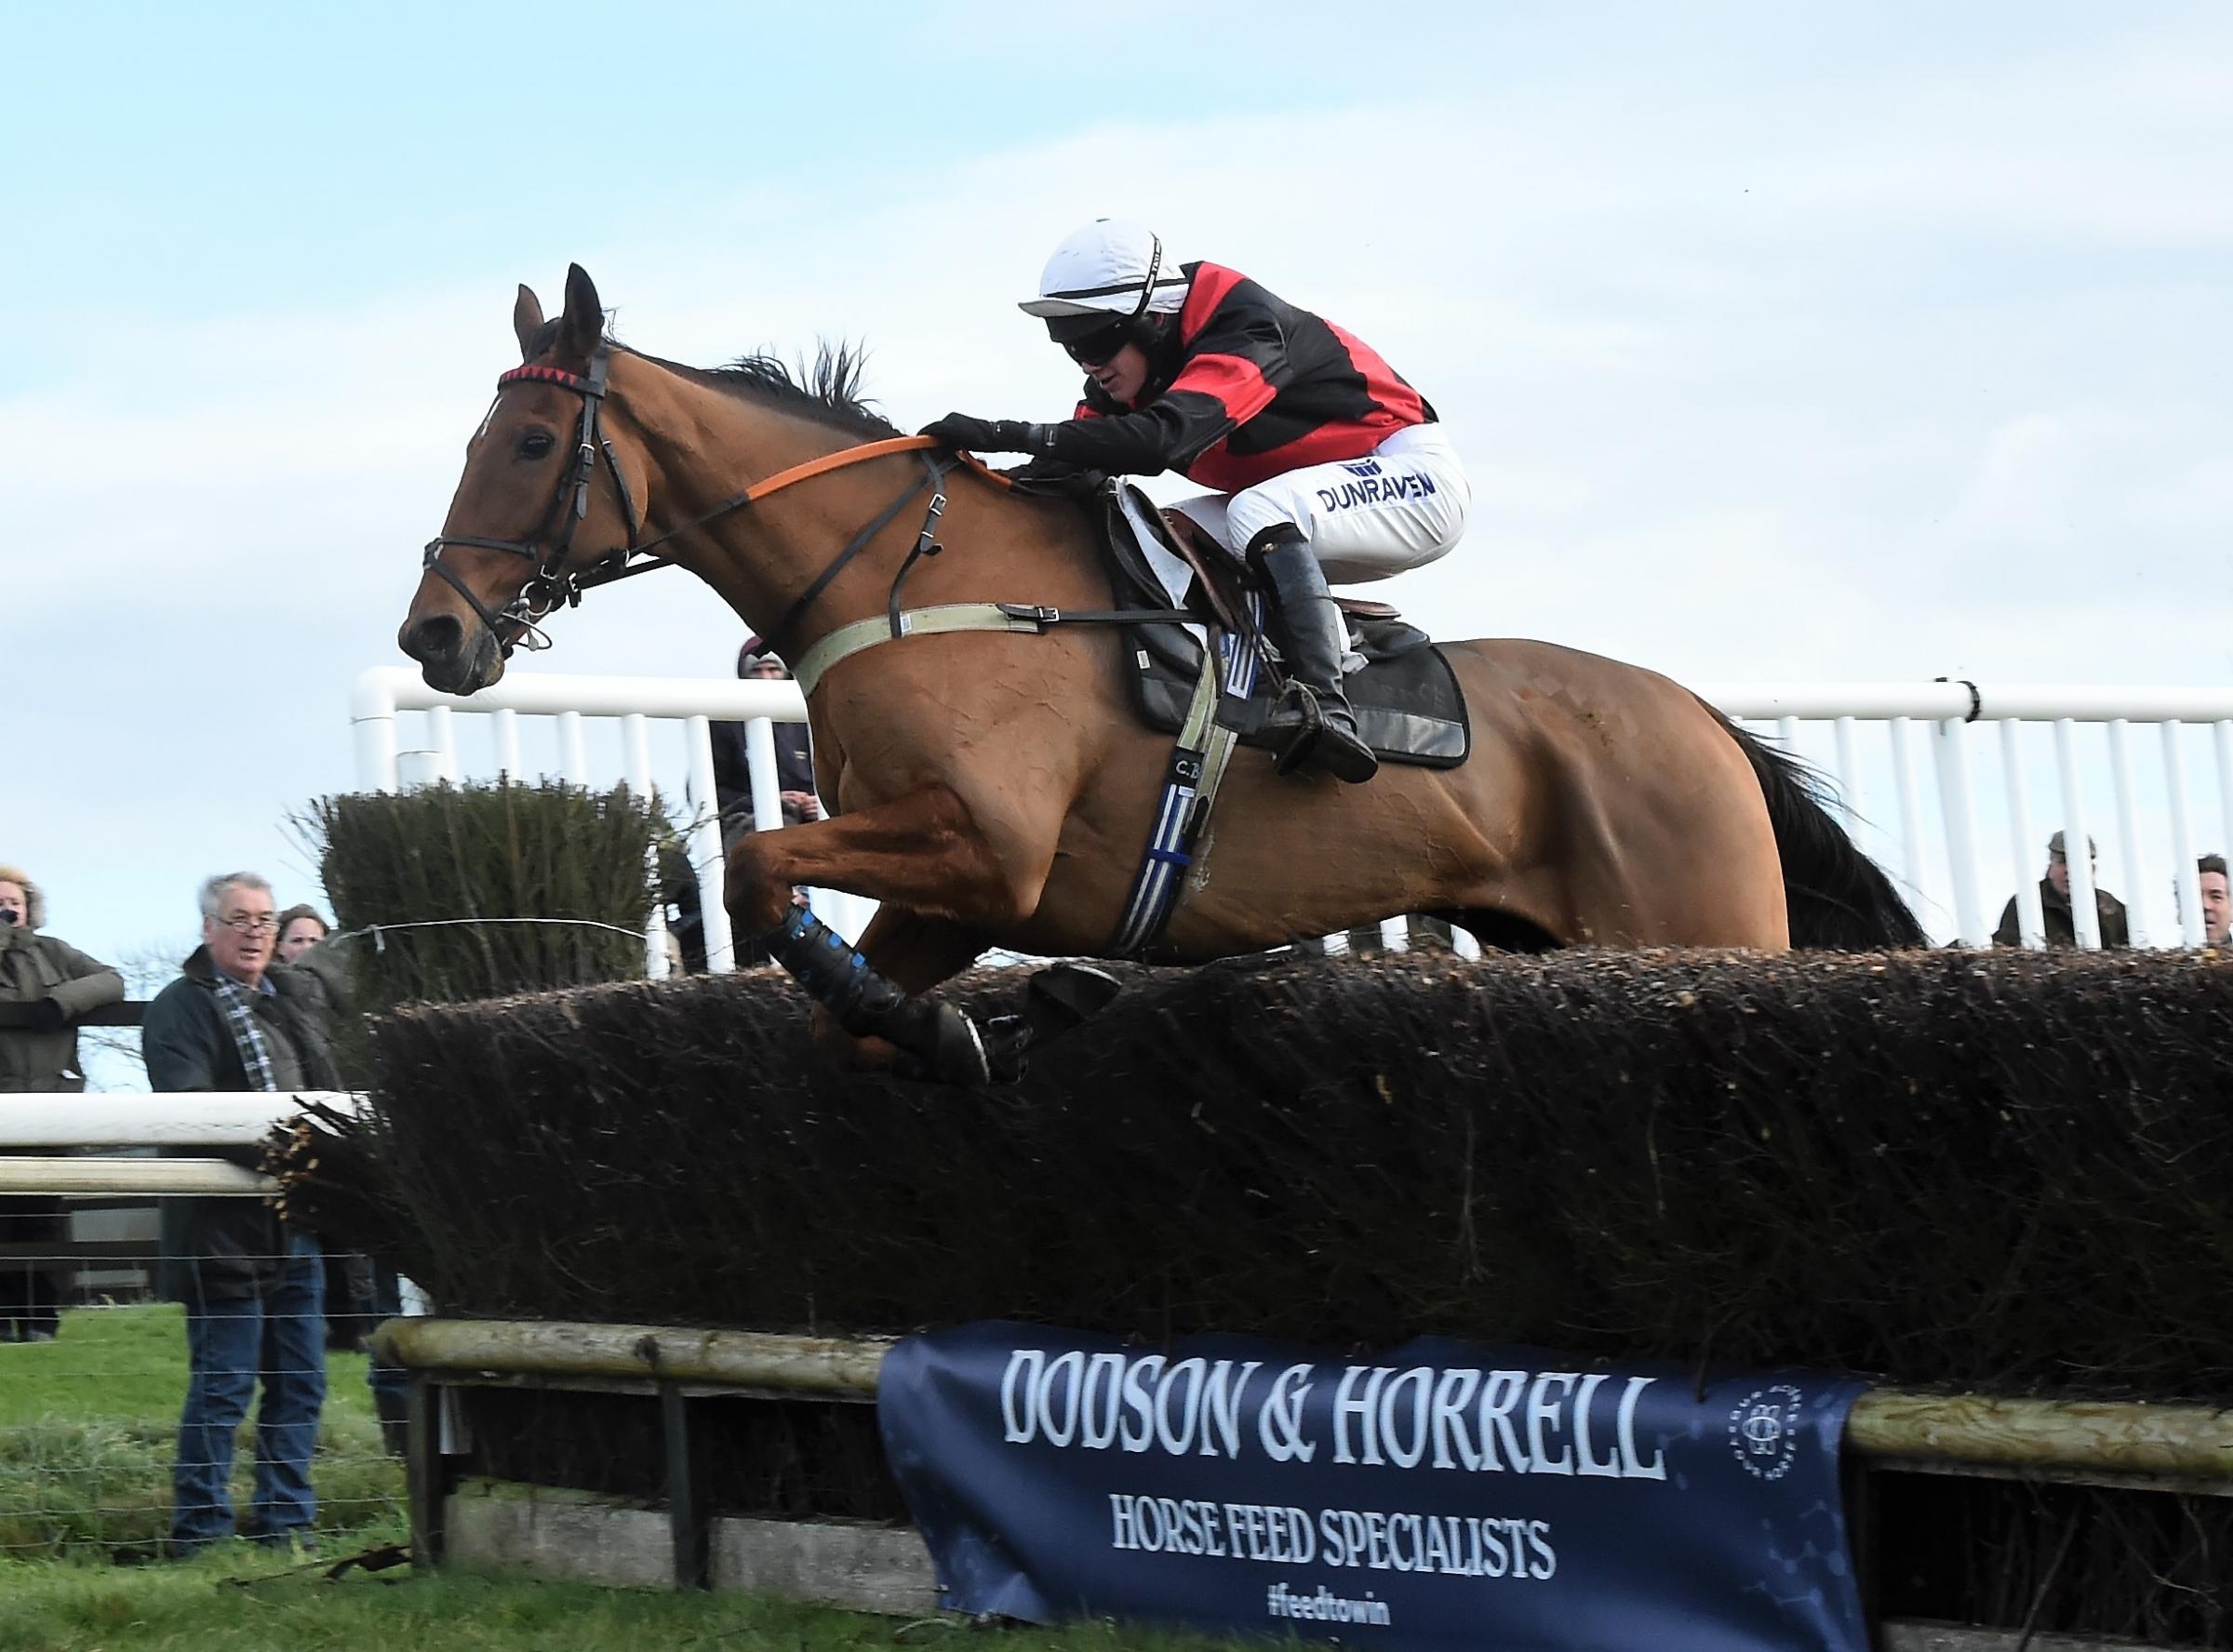 Connor Brace, aged 16, and William Money on their way to victory at Barbury